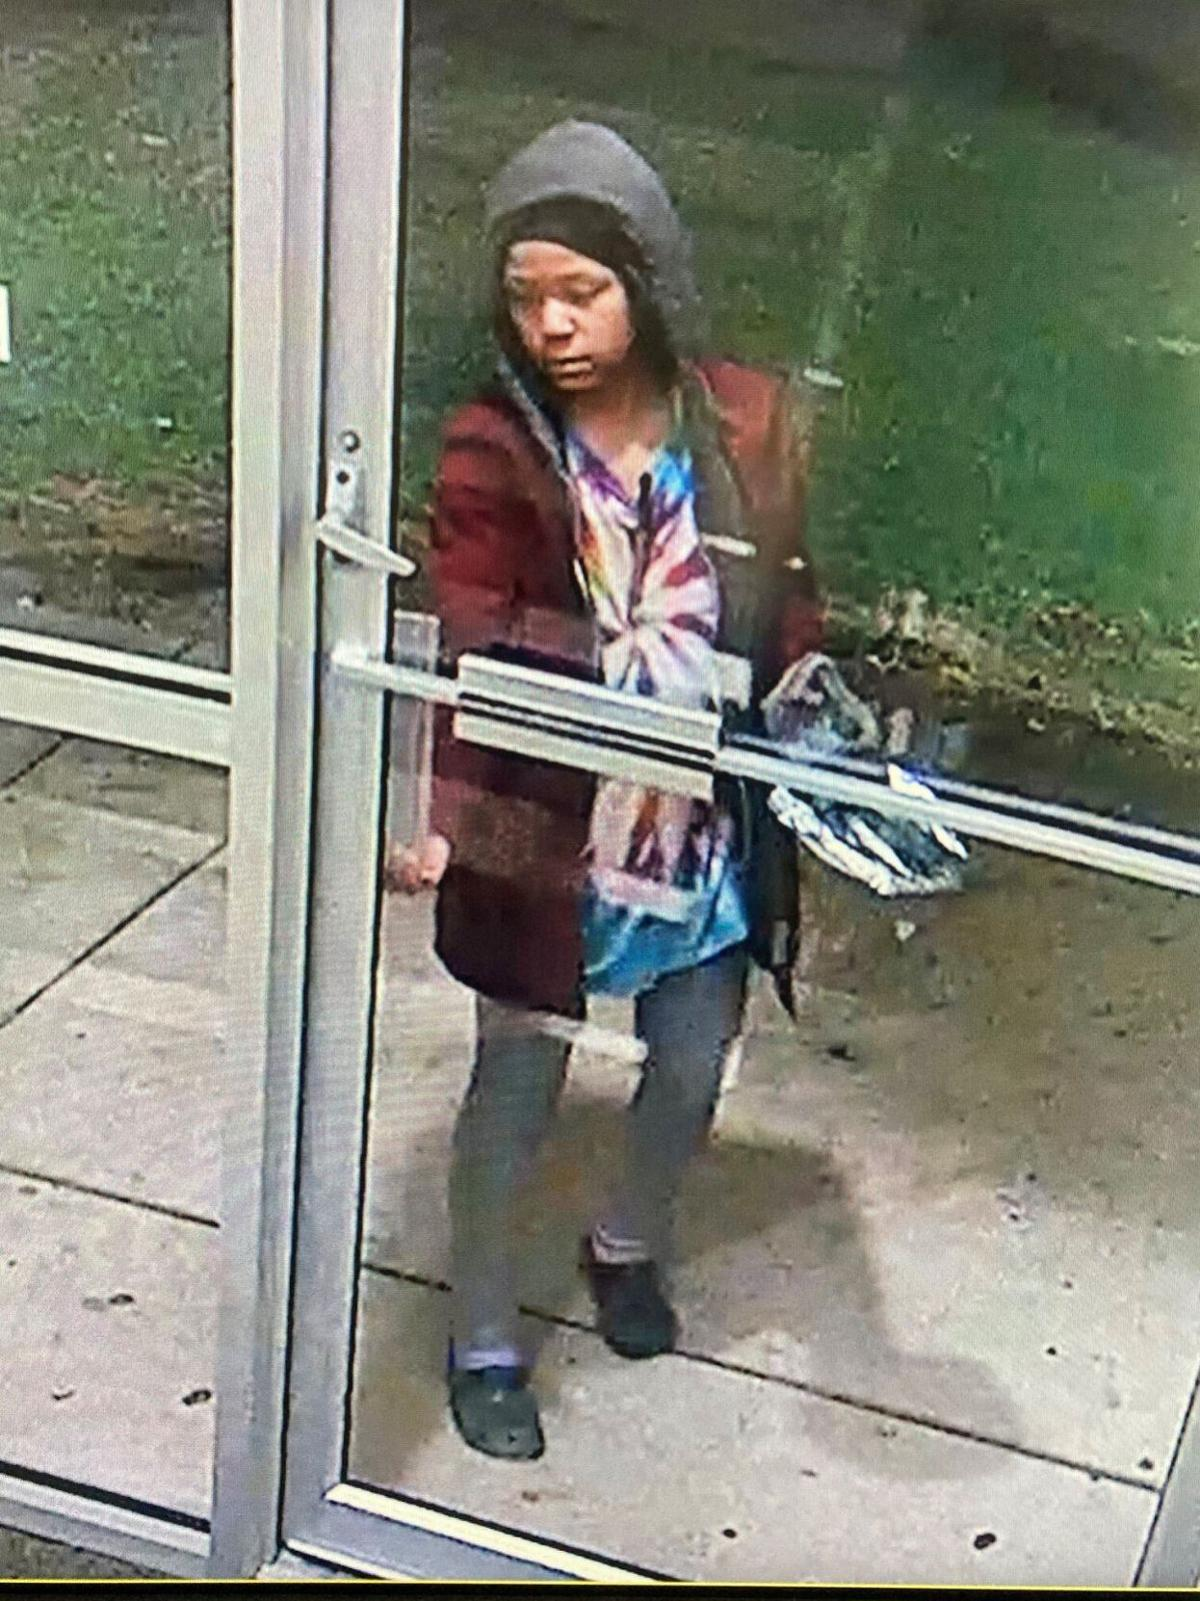 Woman Fitchburg police seek to find and interview